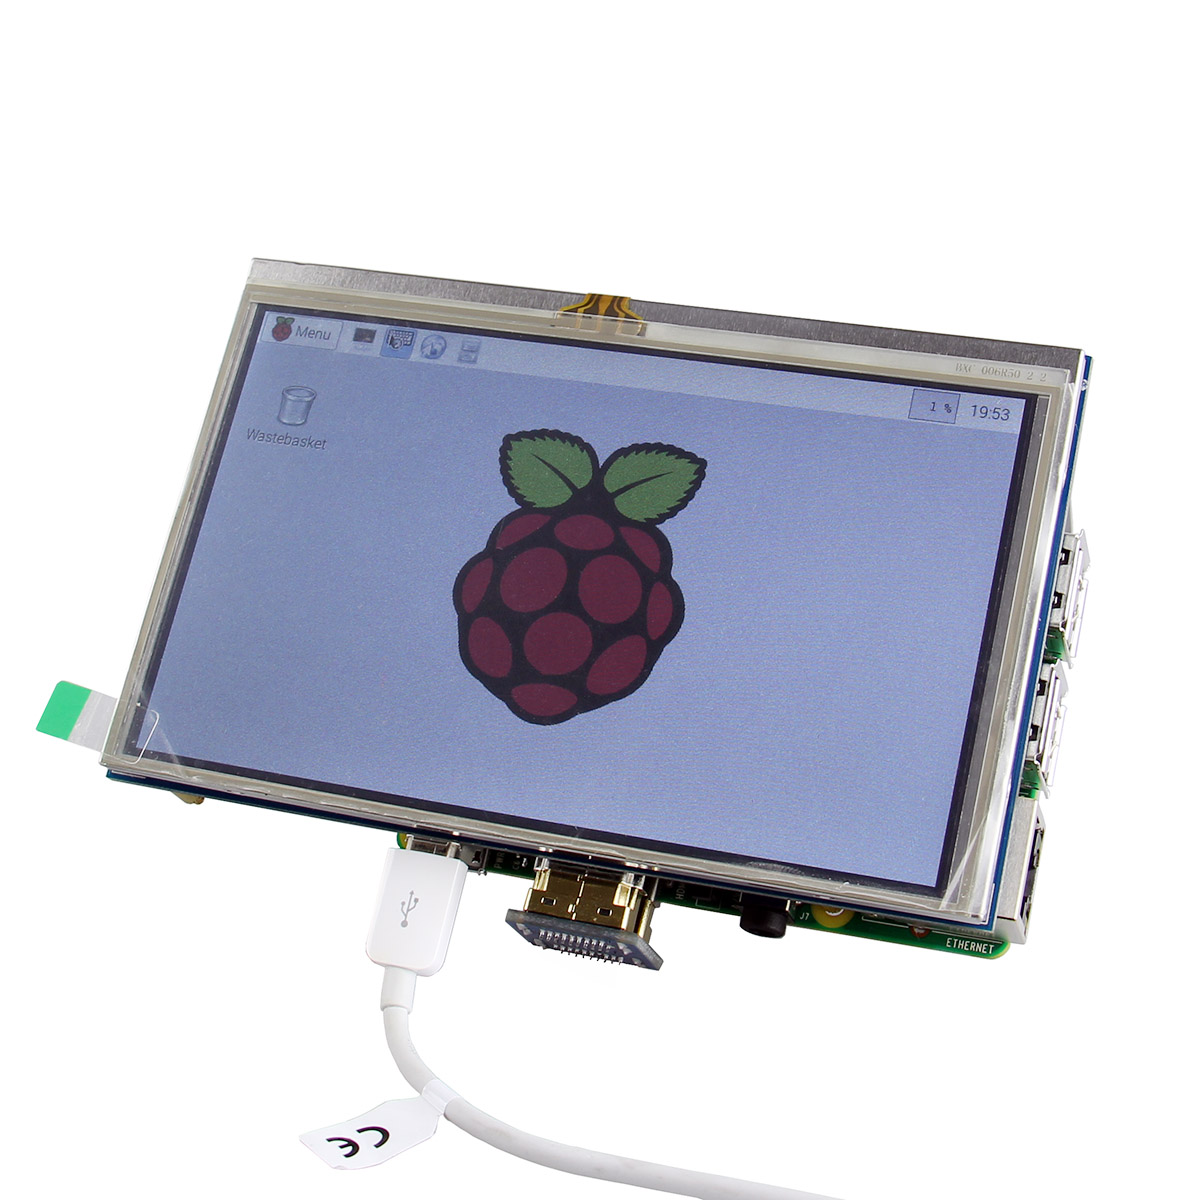 5 inch hdmi tft lcd touch screen for raspberry pi 2 model b b a b alex nld. Black Bedroom Furniture Sets. Home Design Ideas